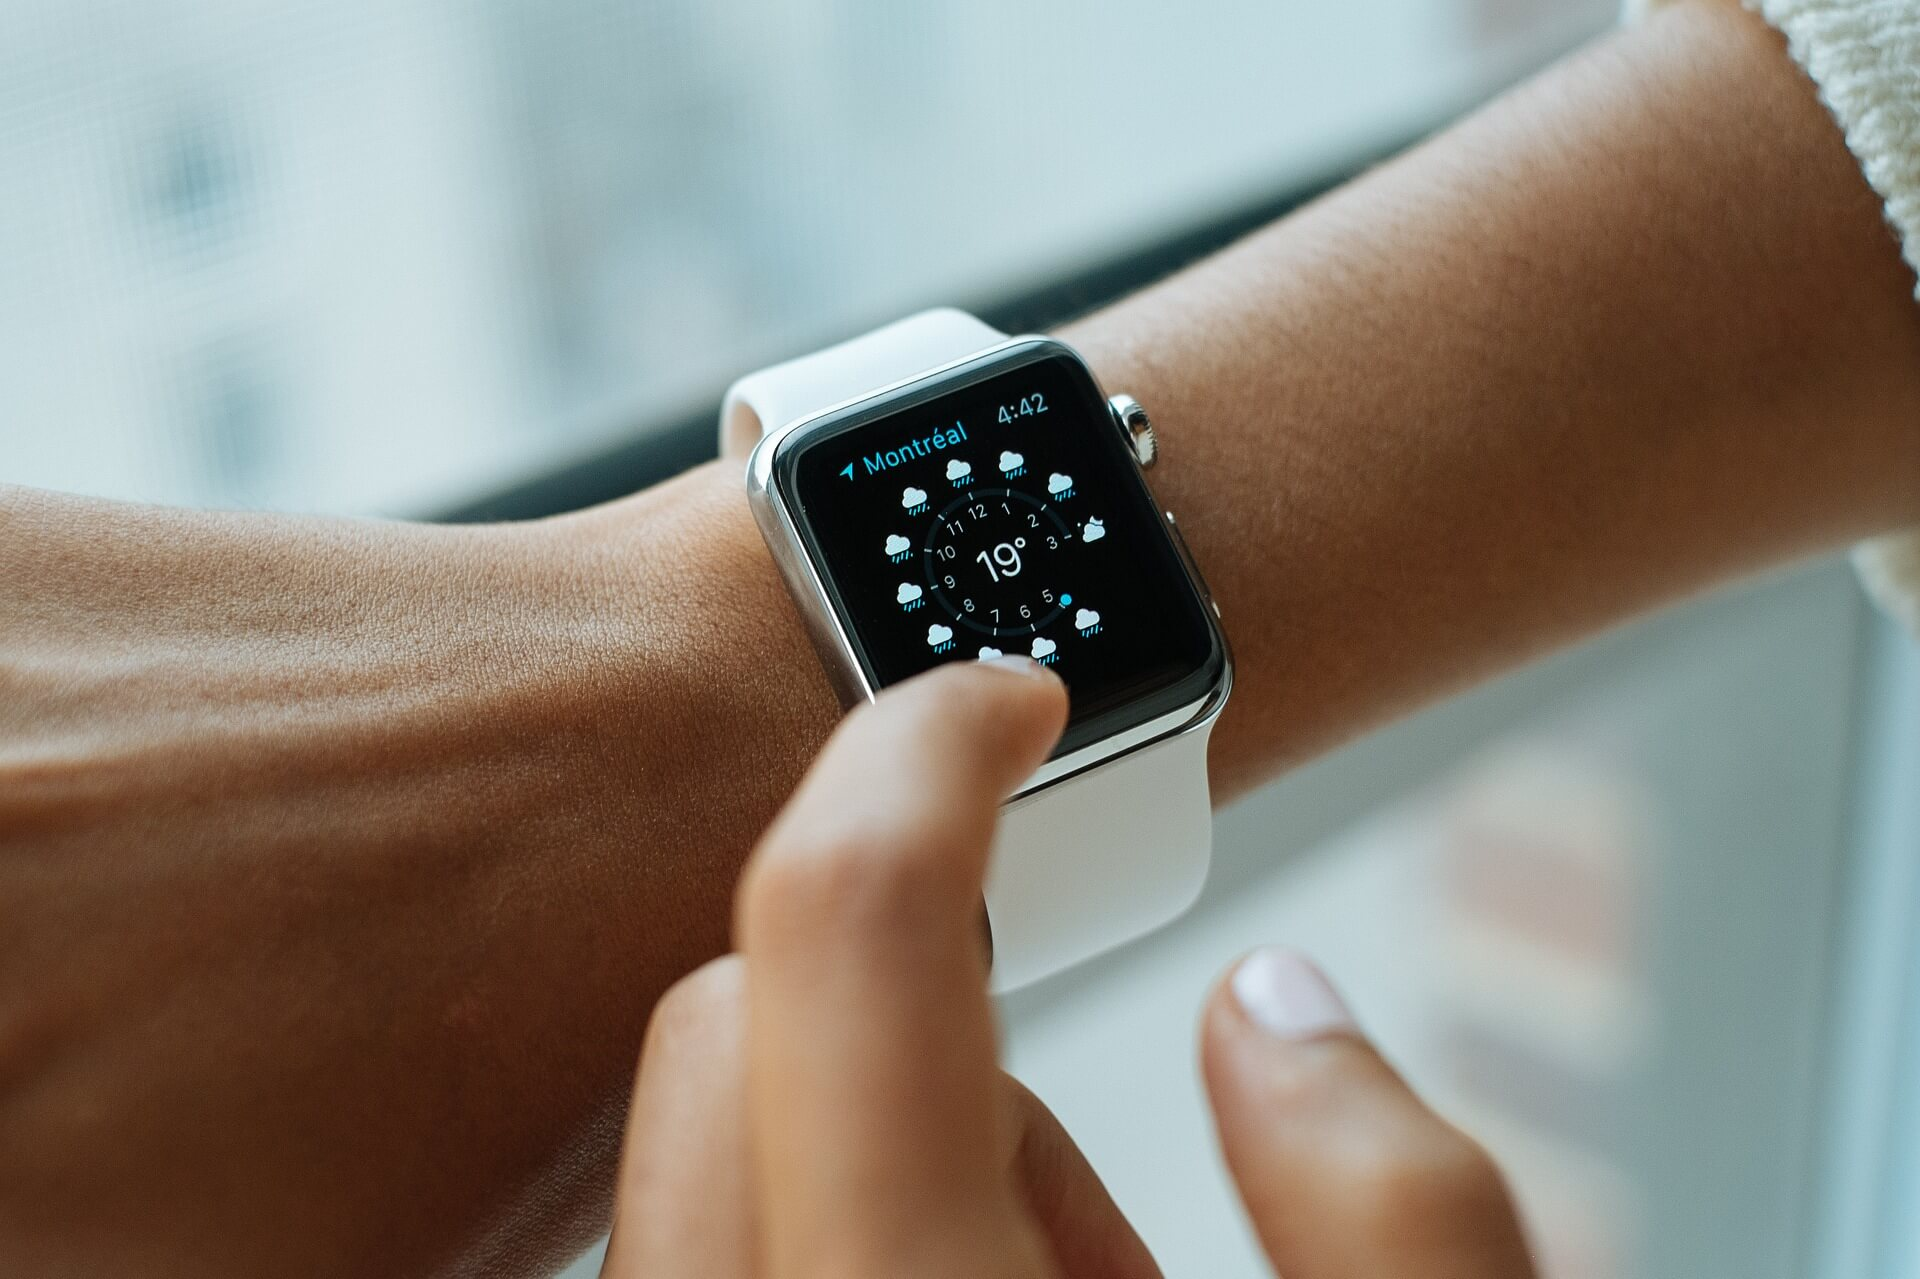 Die Sony Smartwatch 2